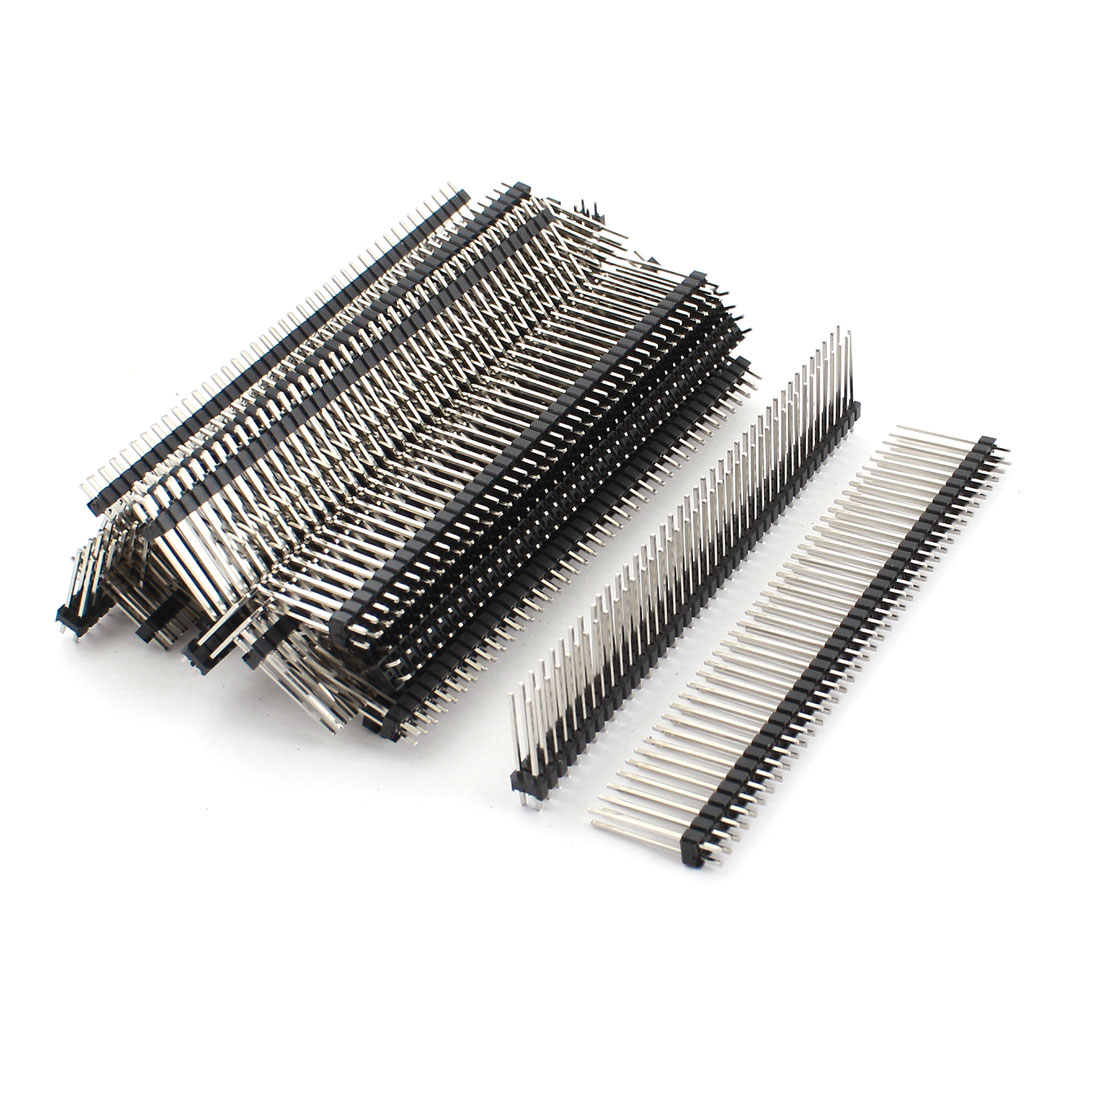 25 Pcs 2.54mm Pitch Double Row 80Pin Male Through Hole Mount Straight Pin Header Strip Connector 20mm